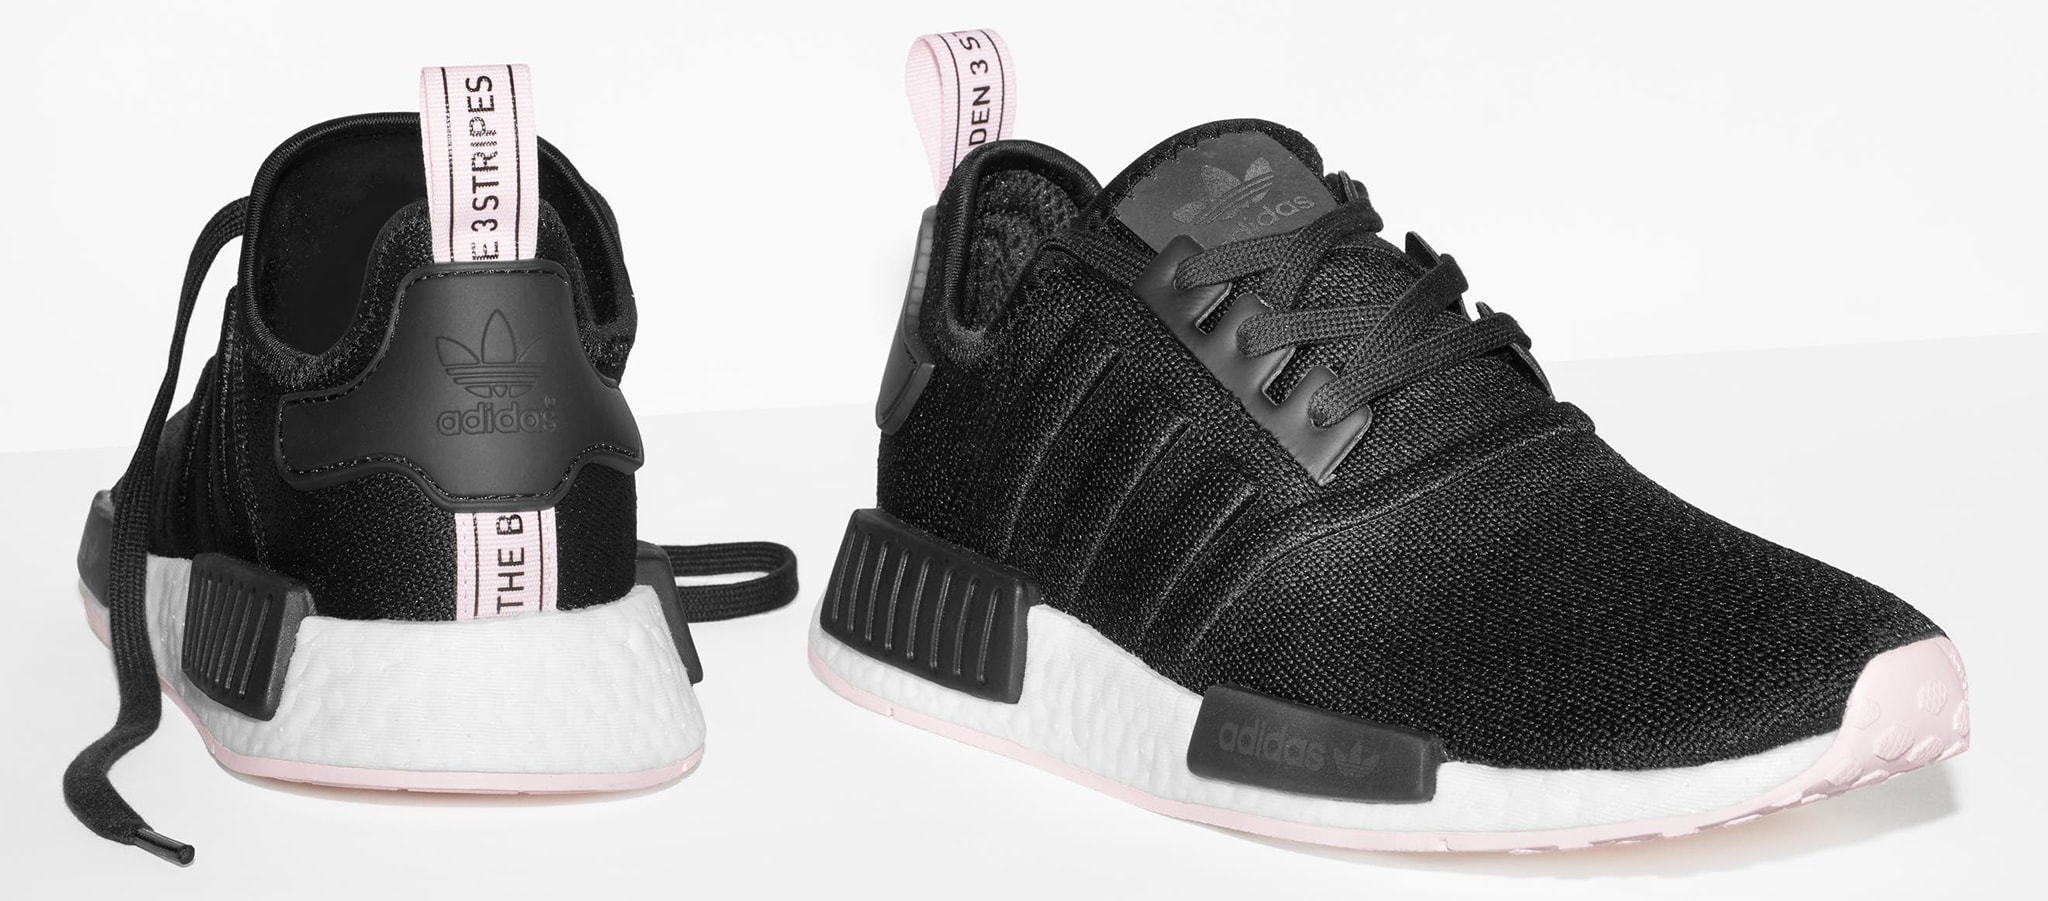 A lightweight pair of shoes made of synthetic mesh with a Boost foam sole